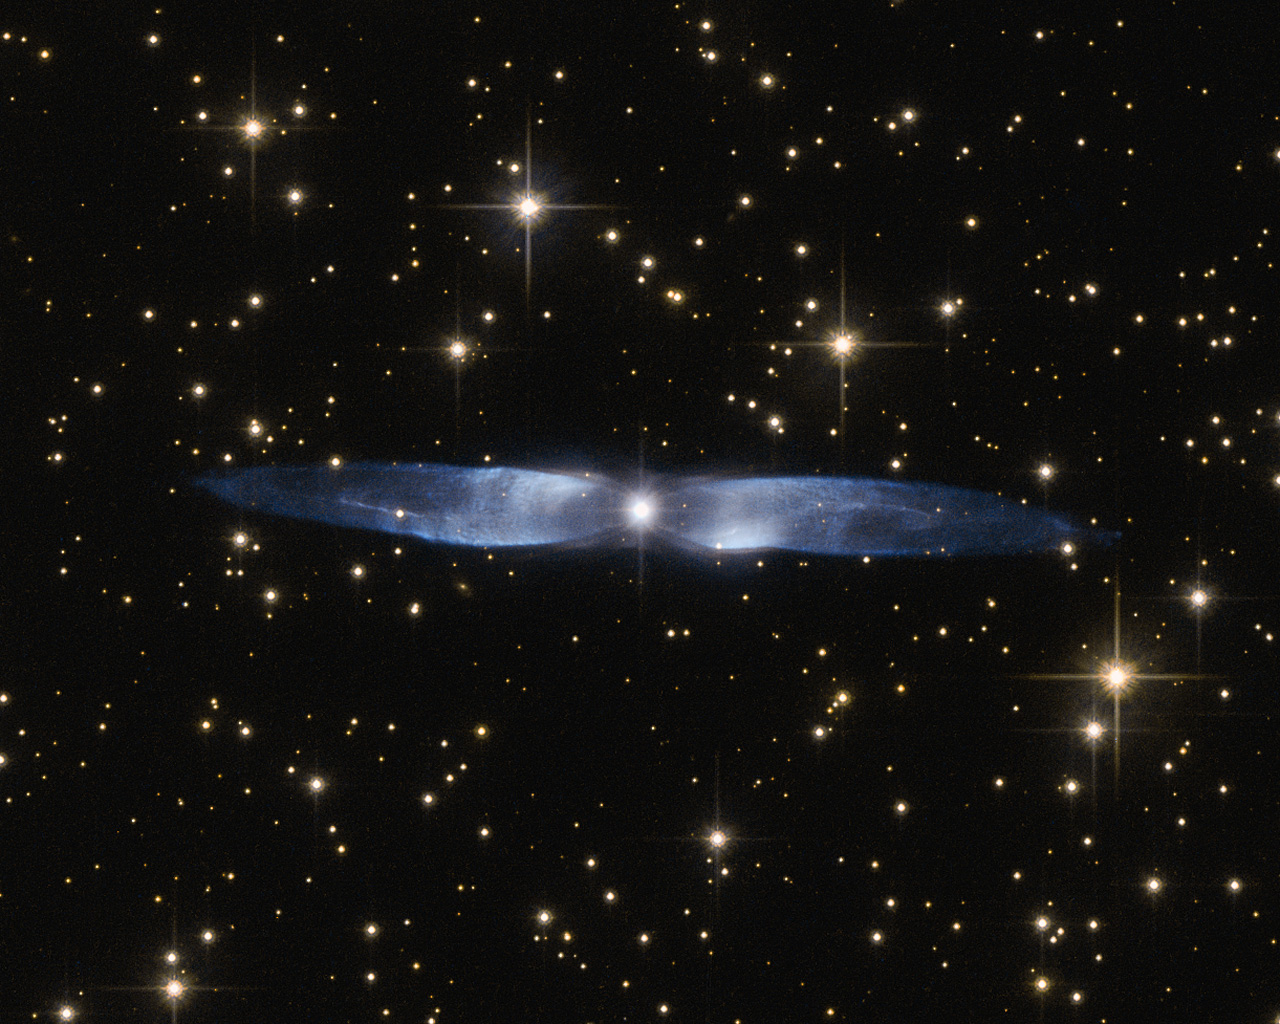 In this cosmic snapshot, the spectacularly symmetrical wings of Hen 2-437 show up in a magnificent icy blue hue. Hen 2-437 is a planetary nebula, one of around 3000 such objects known to reside within the Milky Way. Located within the faint northern constellation of Vulpecula (The Fox), Hen 2-437 was first identified in 1946 by Rudolph Minkowski, who later also discovered the famous and equally beautiful M2-9 (otherwise known as the Twin Jet Nebula). Hen 2-437 was added to a catalogue of planetary nebula over two decades later by astronomer and NASA astronaut Karl Gordon Henize. Planetary nebulae such as Hen 2-437 form when an aging low-mass star — such as the Sun — reaches the final stages of life. The star swells to become a red giant, before casting off its gaseous outer layers into space. The star itself then slowly shrinks to form a white dwarf, while the expelled gas is slowly compressed and pushed outwards by stellar winds. As shown by its remarkably beautiful appearance, Hen 2-437 is a bipolar nebula — the material ejected by the dying star has streamed out into space to create the two icy blue lobes pictured here.